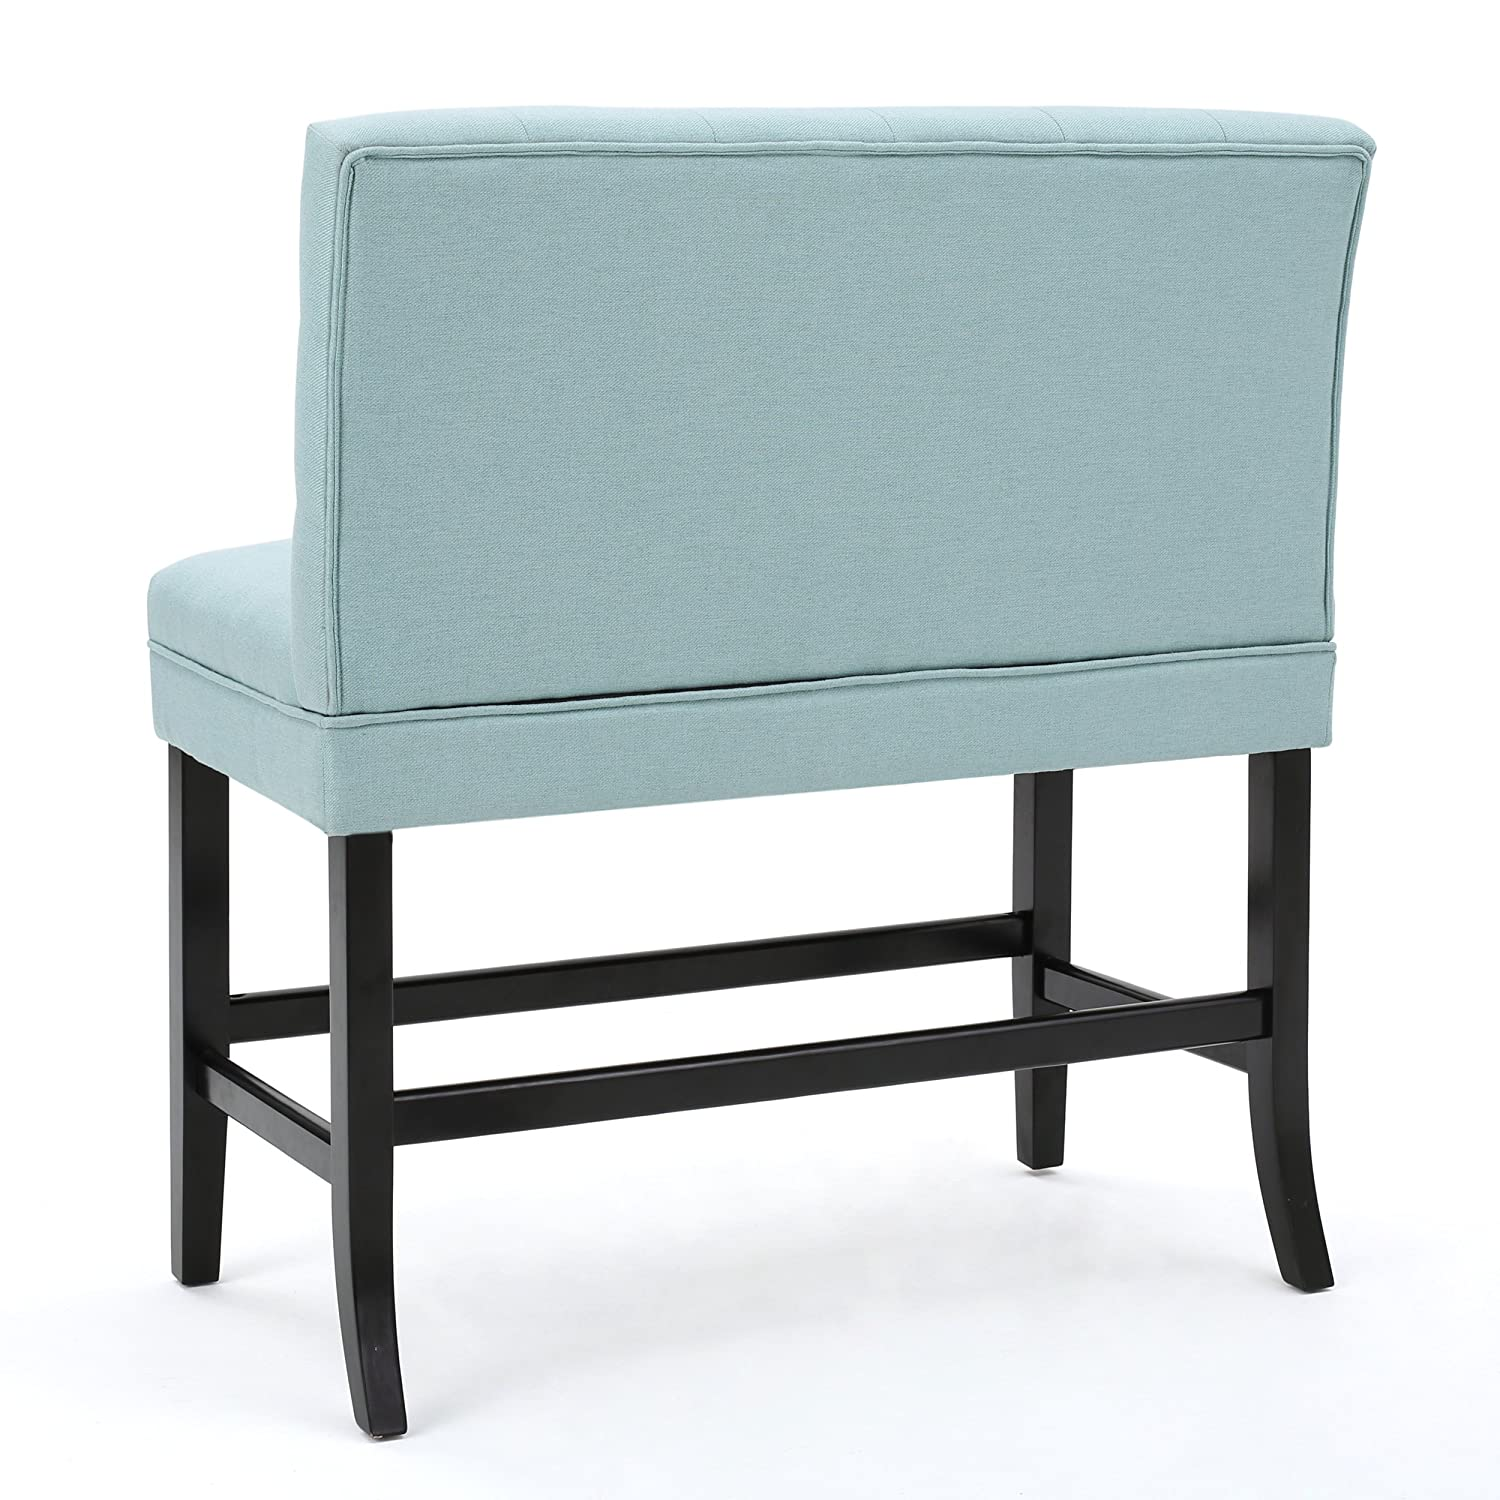 Beautiful Bench Stool Chairs Image Collection Bathtub